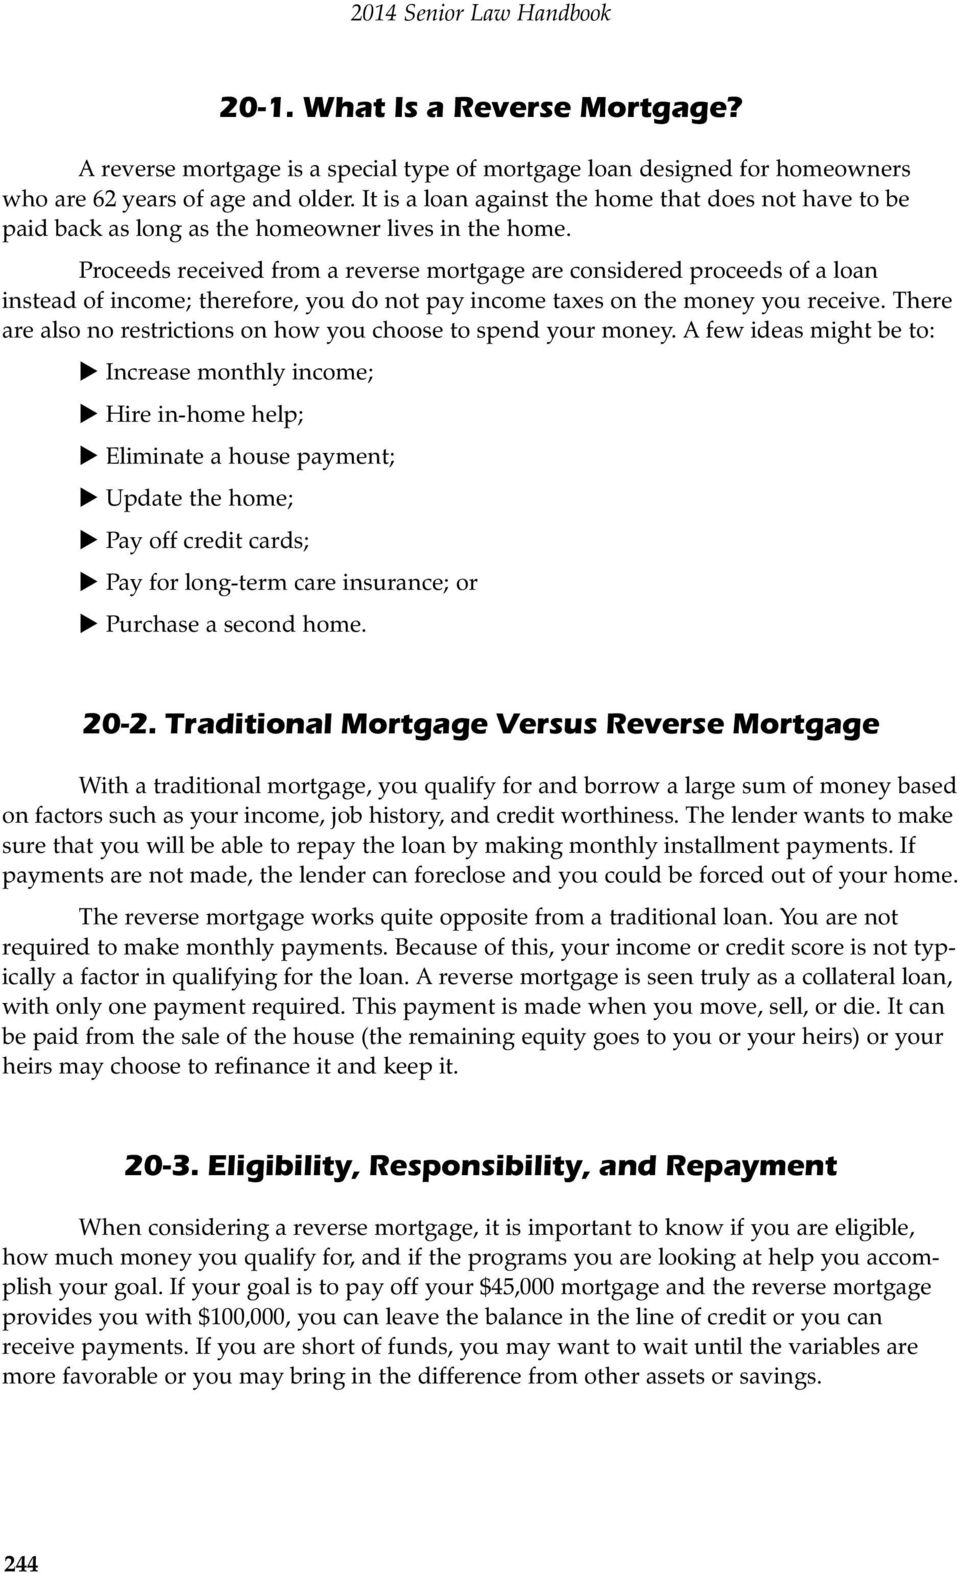 Proceeds received from a reverse mortgage are considered proceeds of a loan instead of income; therefore, you do not pay income taxes on the money you receive.